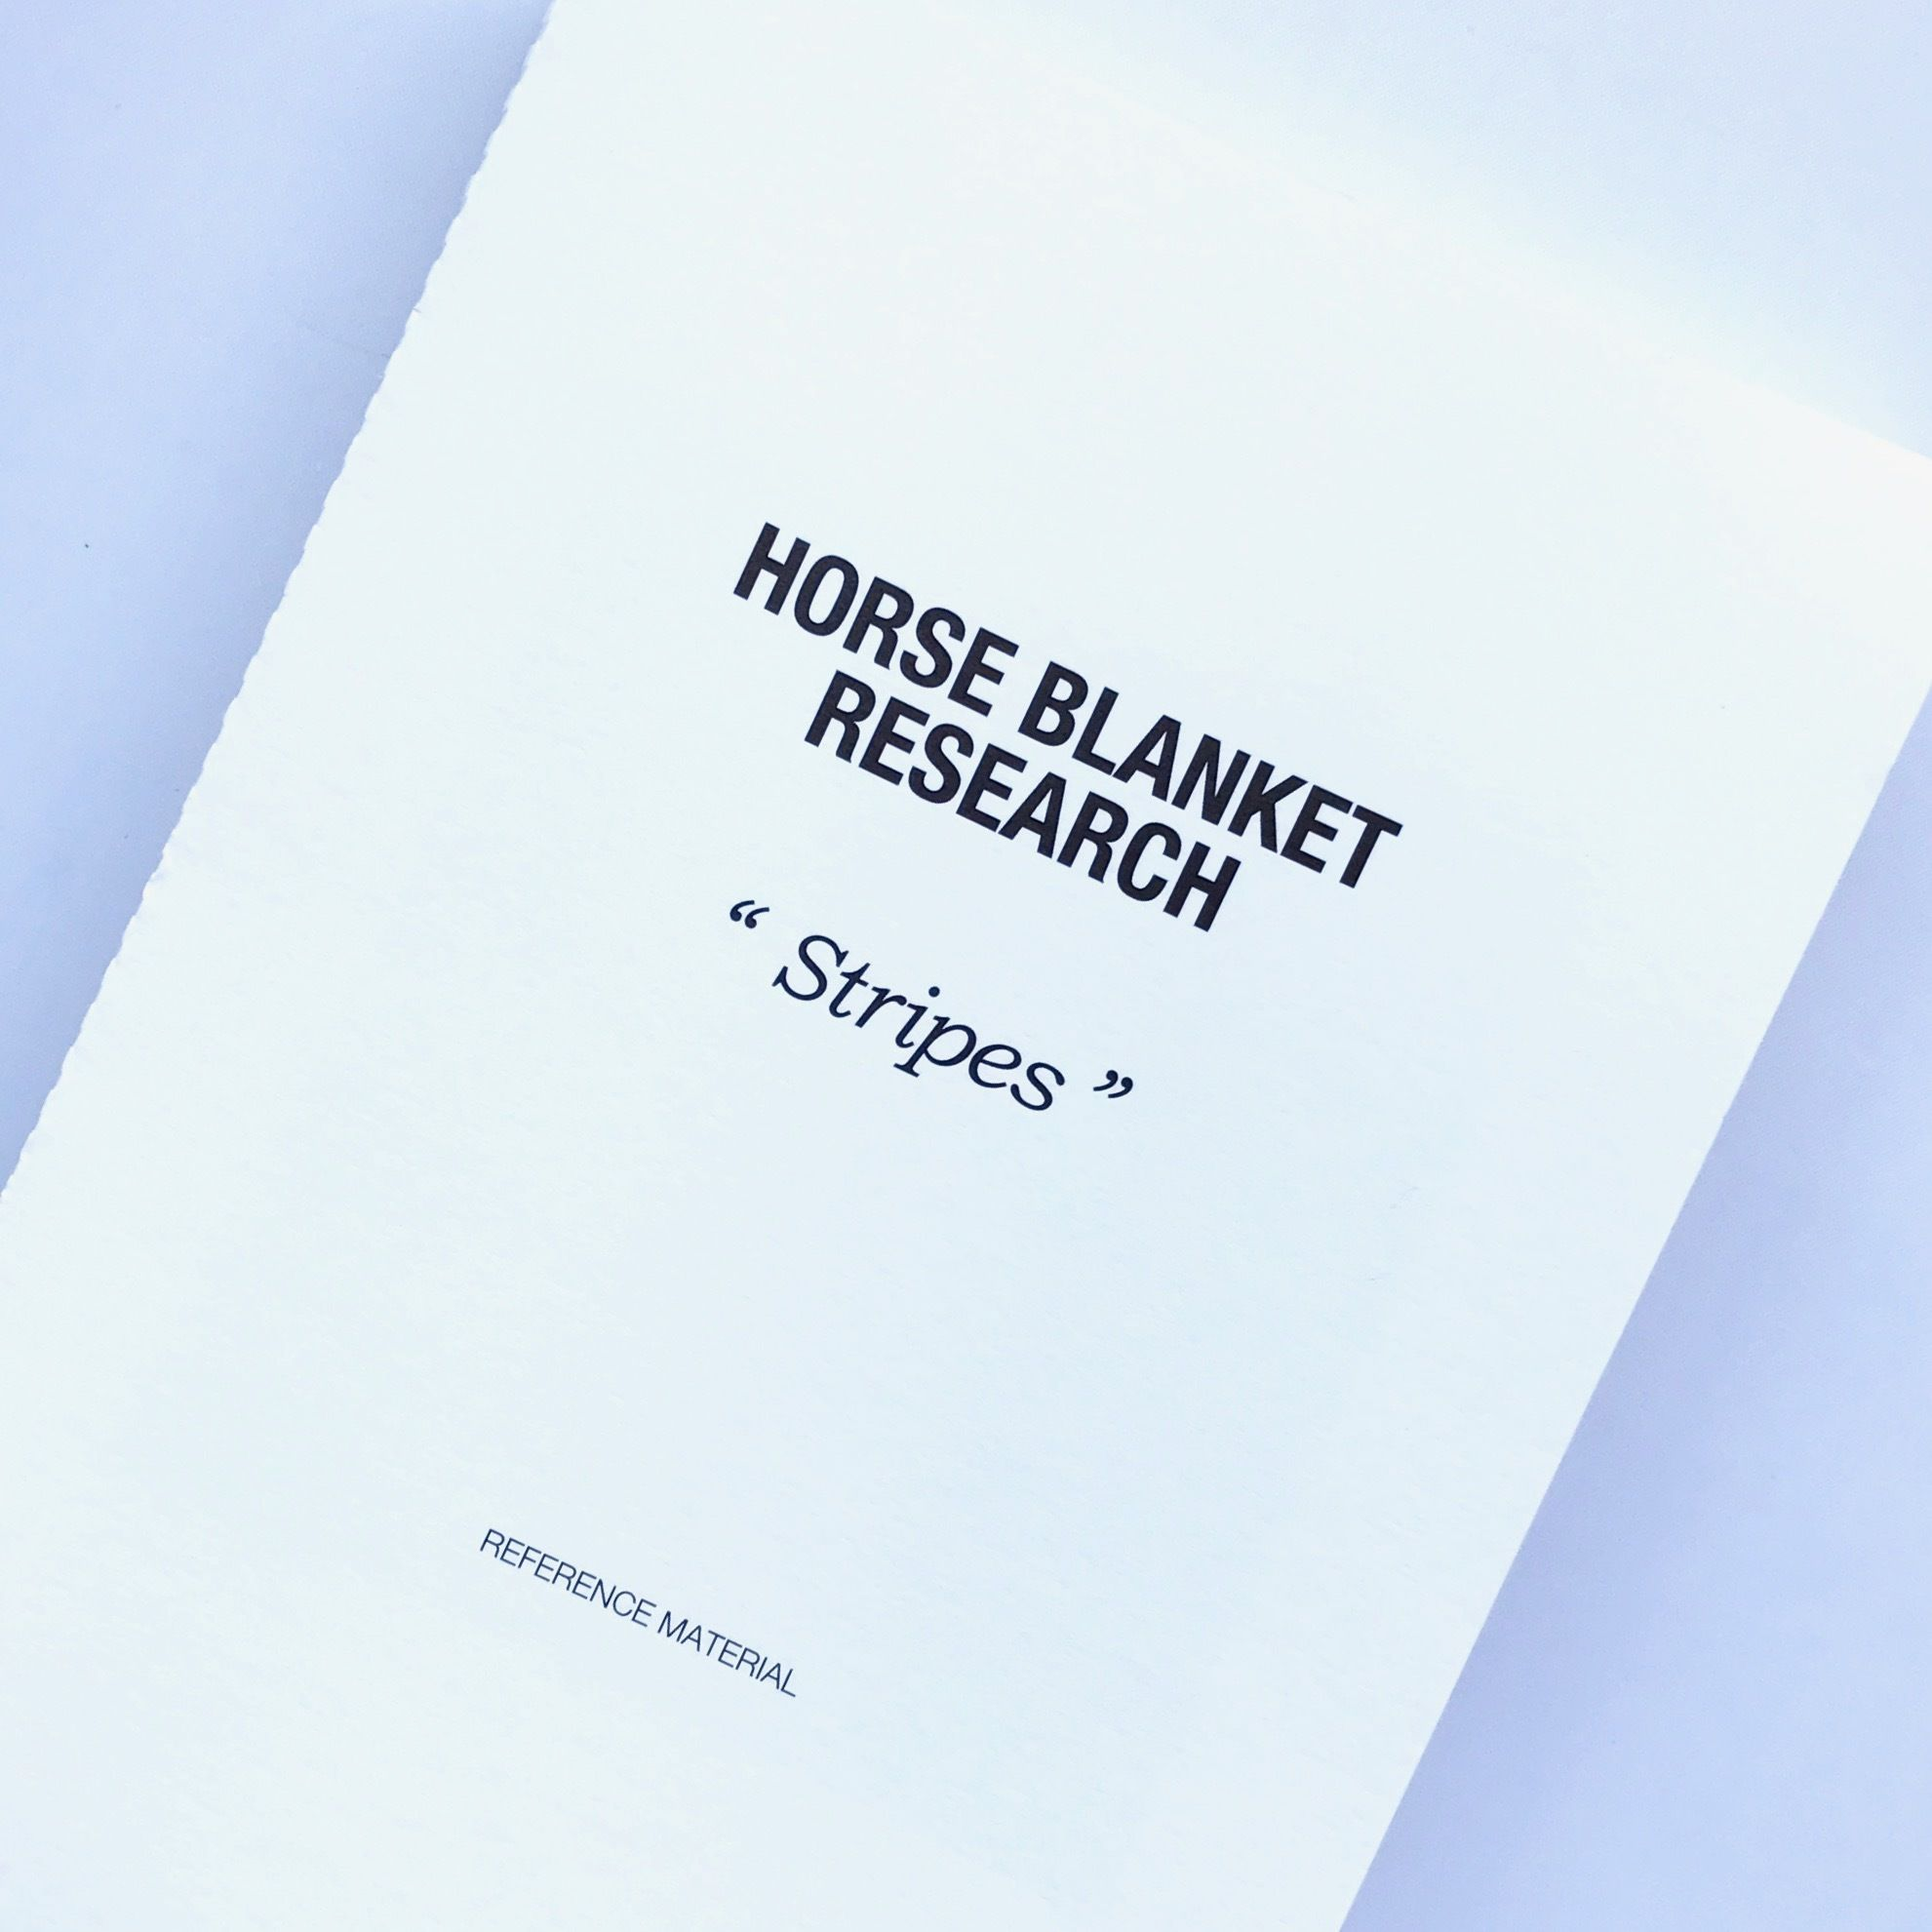 Horse Blanket  Research REFERENCE  MATERIAL